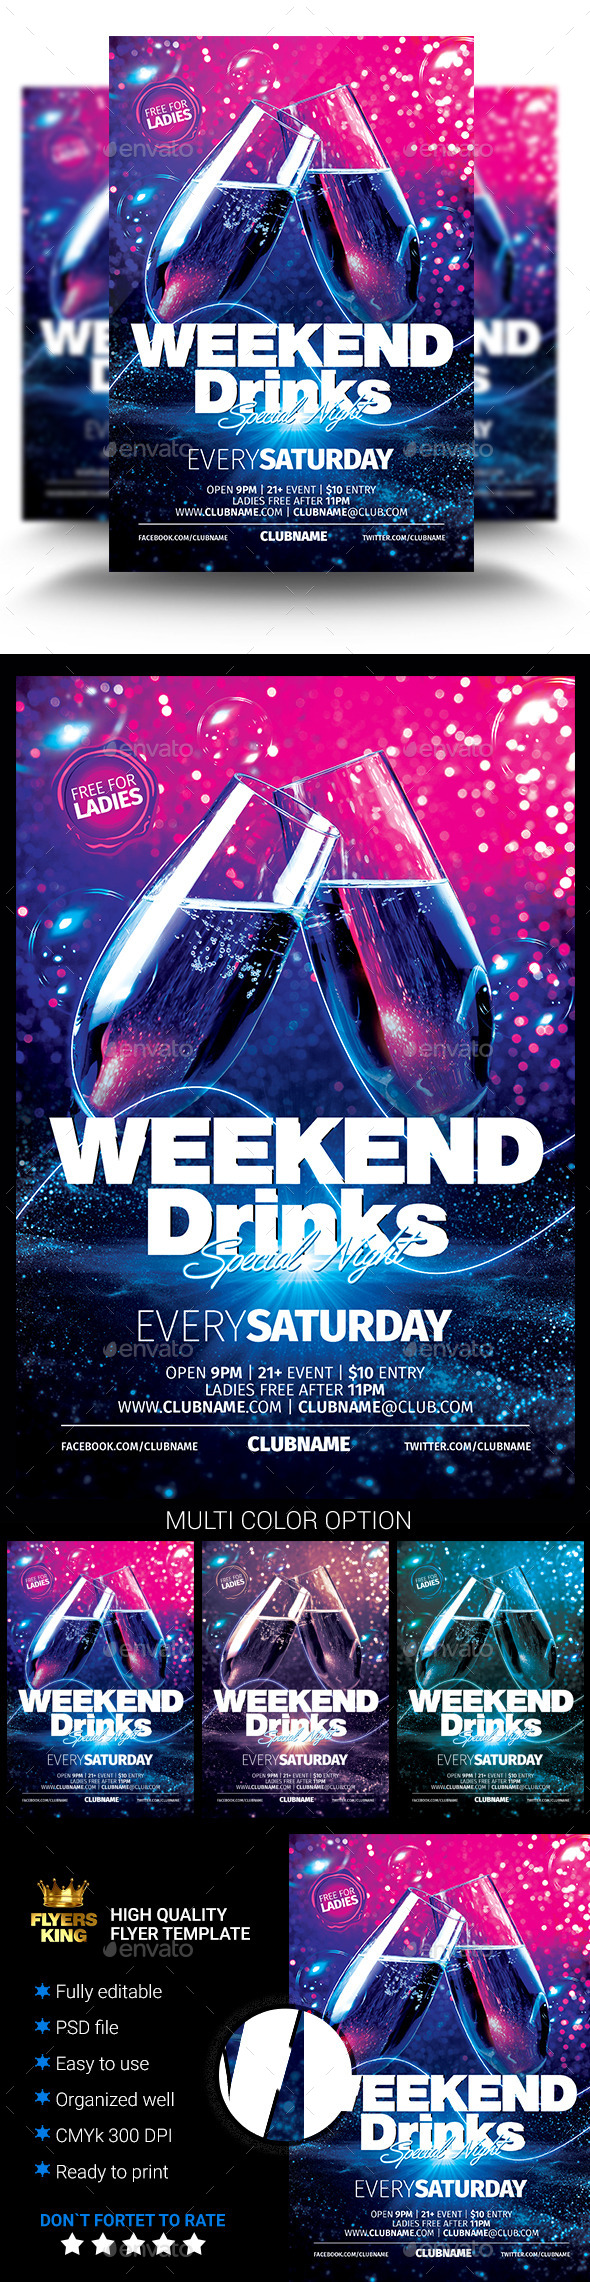 GraphicRiver Weekend Drinks Party Flyer 11218406